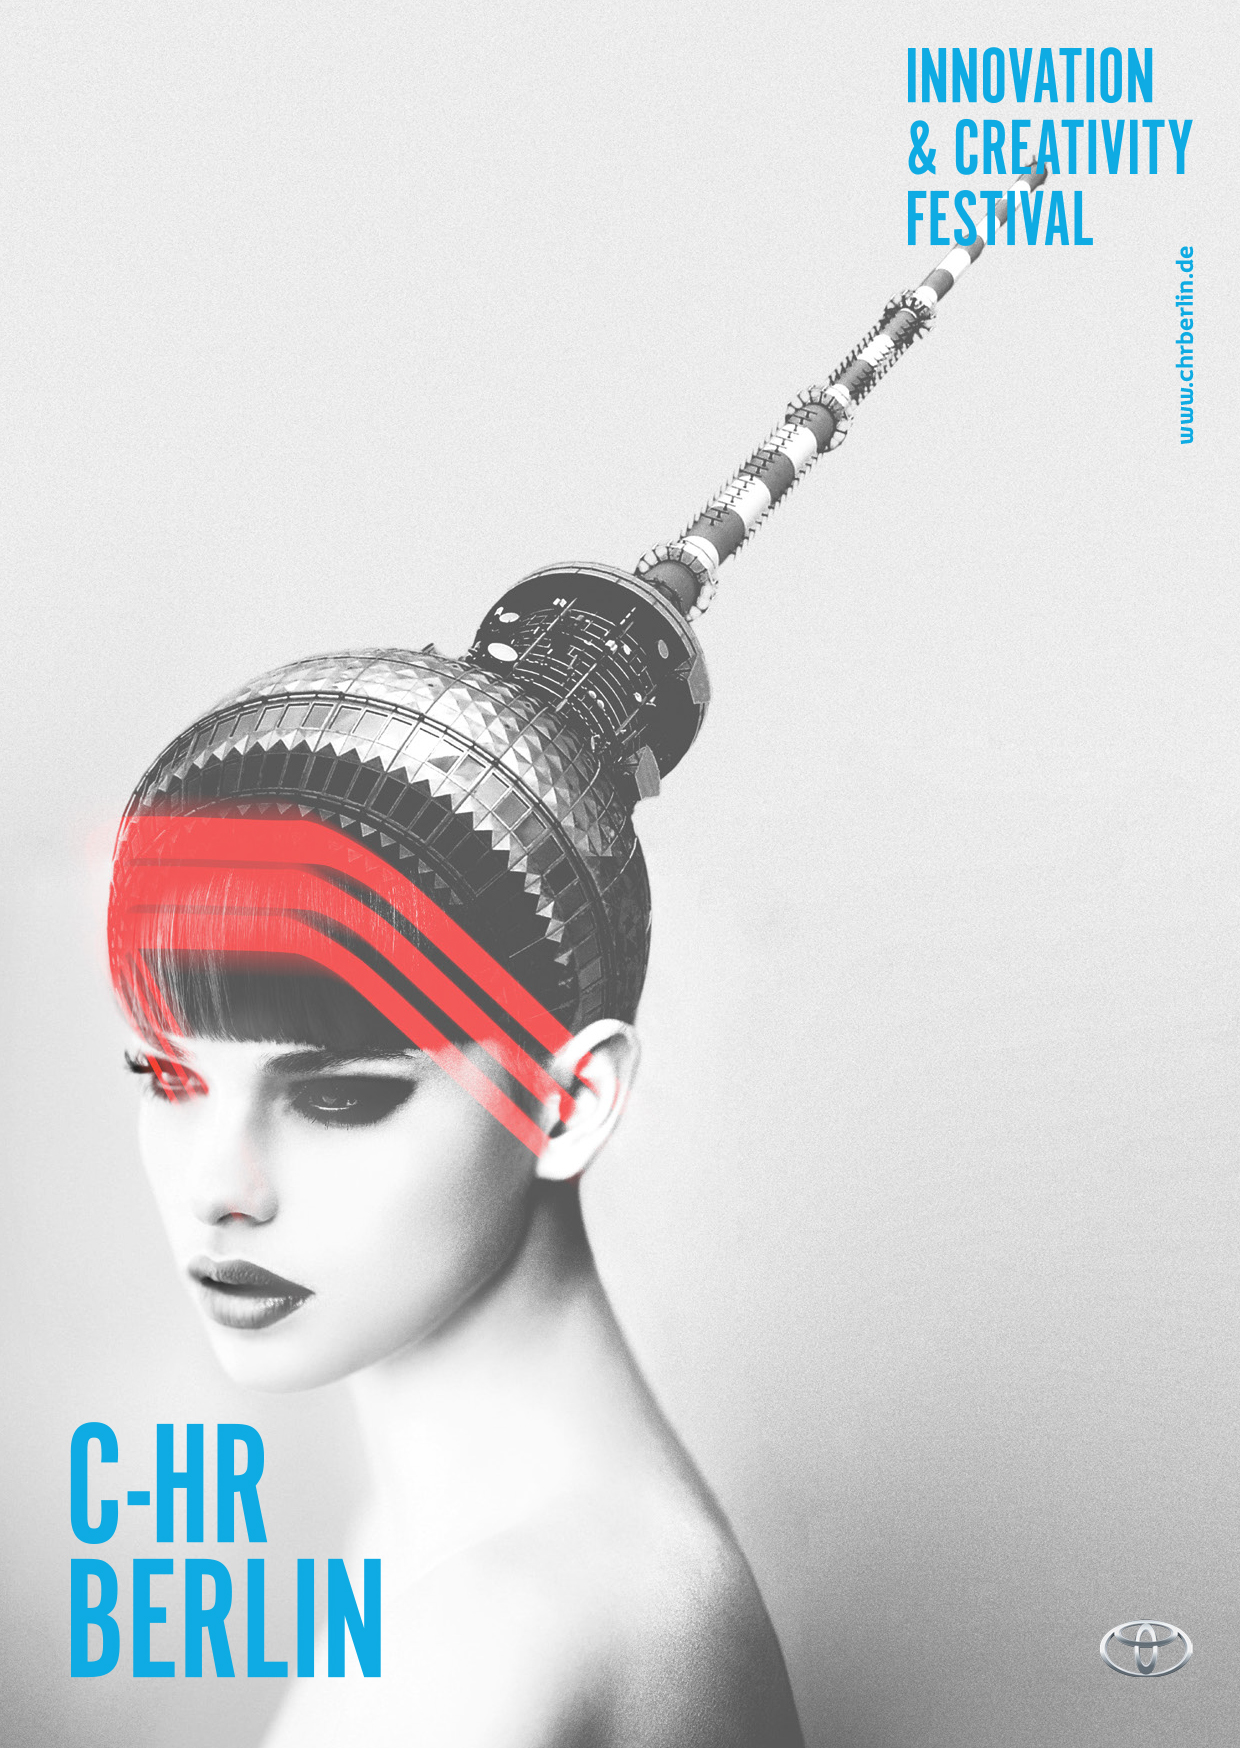 C-HR_BERLIN_A6_Postcards_1-5.jpg